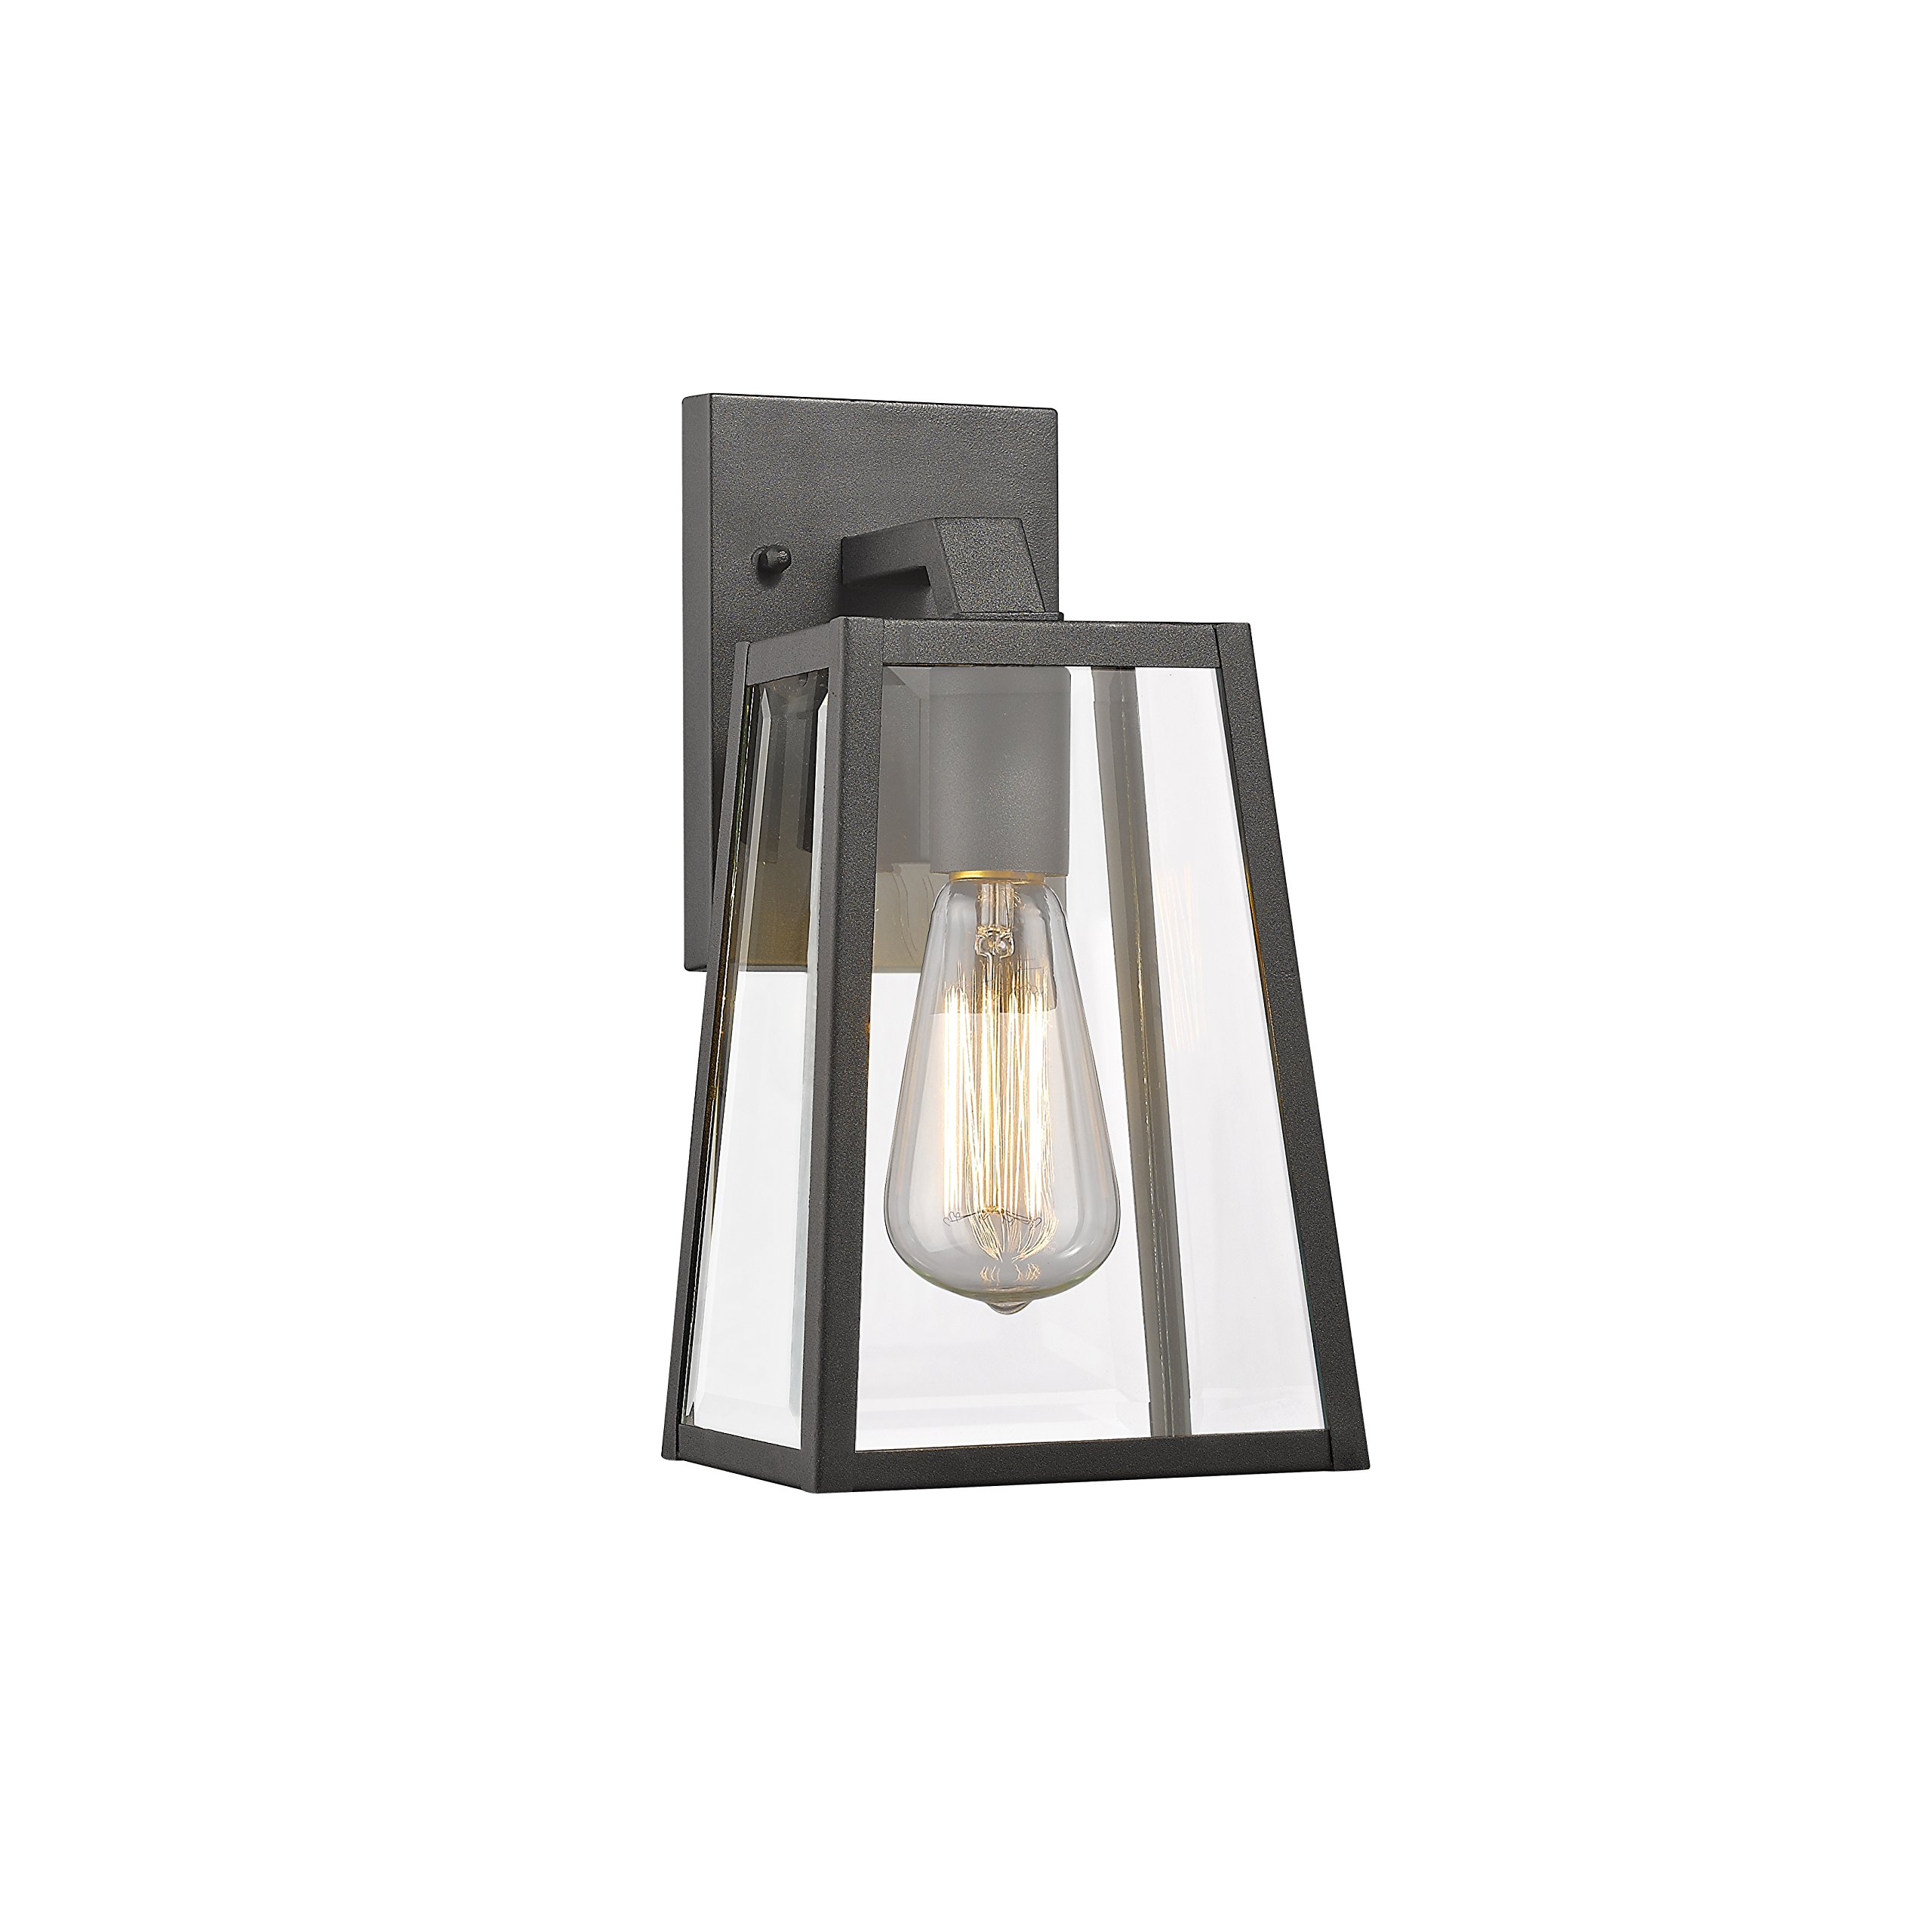 Chloe Lighting CH822034BK11-OD1 Transitional 1 Light Black Outdoor Wall Sconce 11'' Height